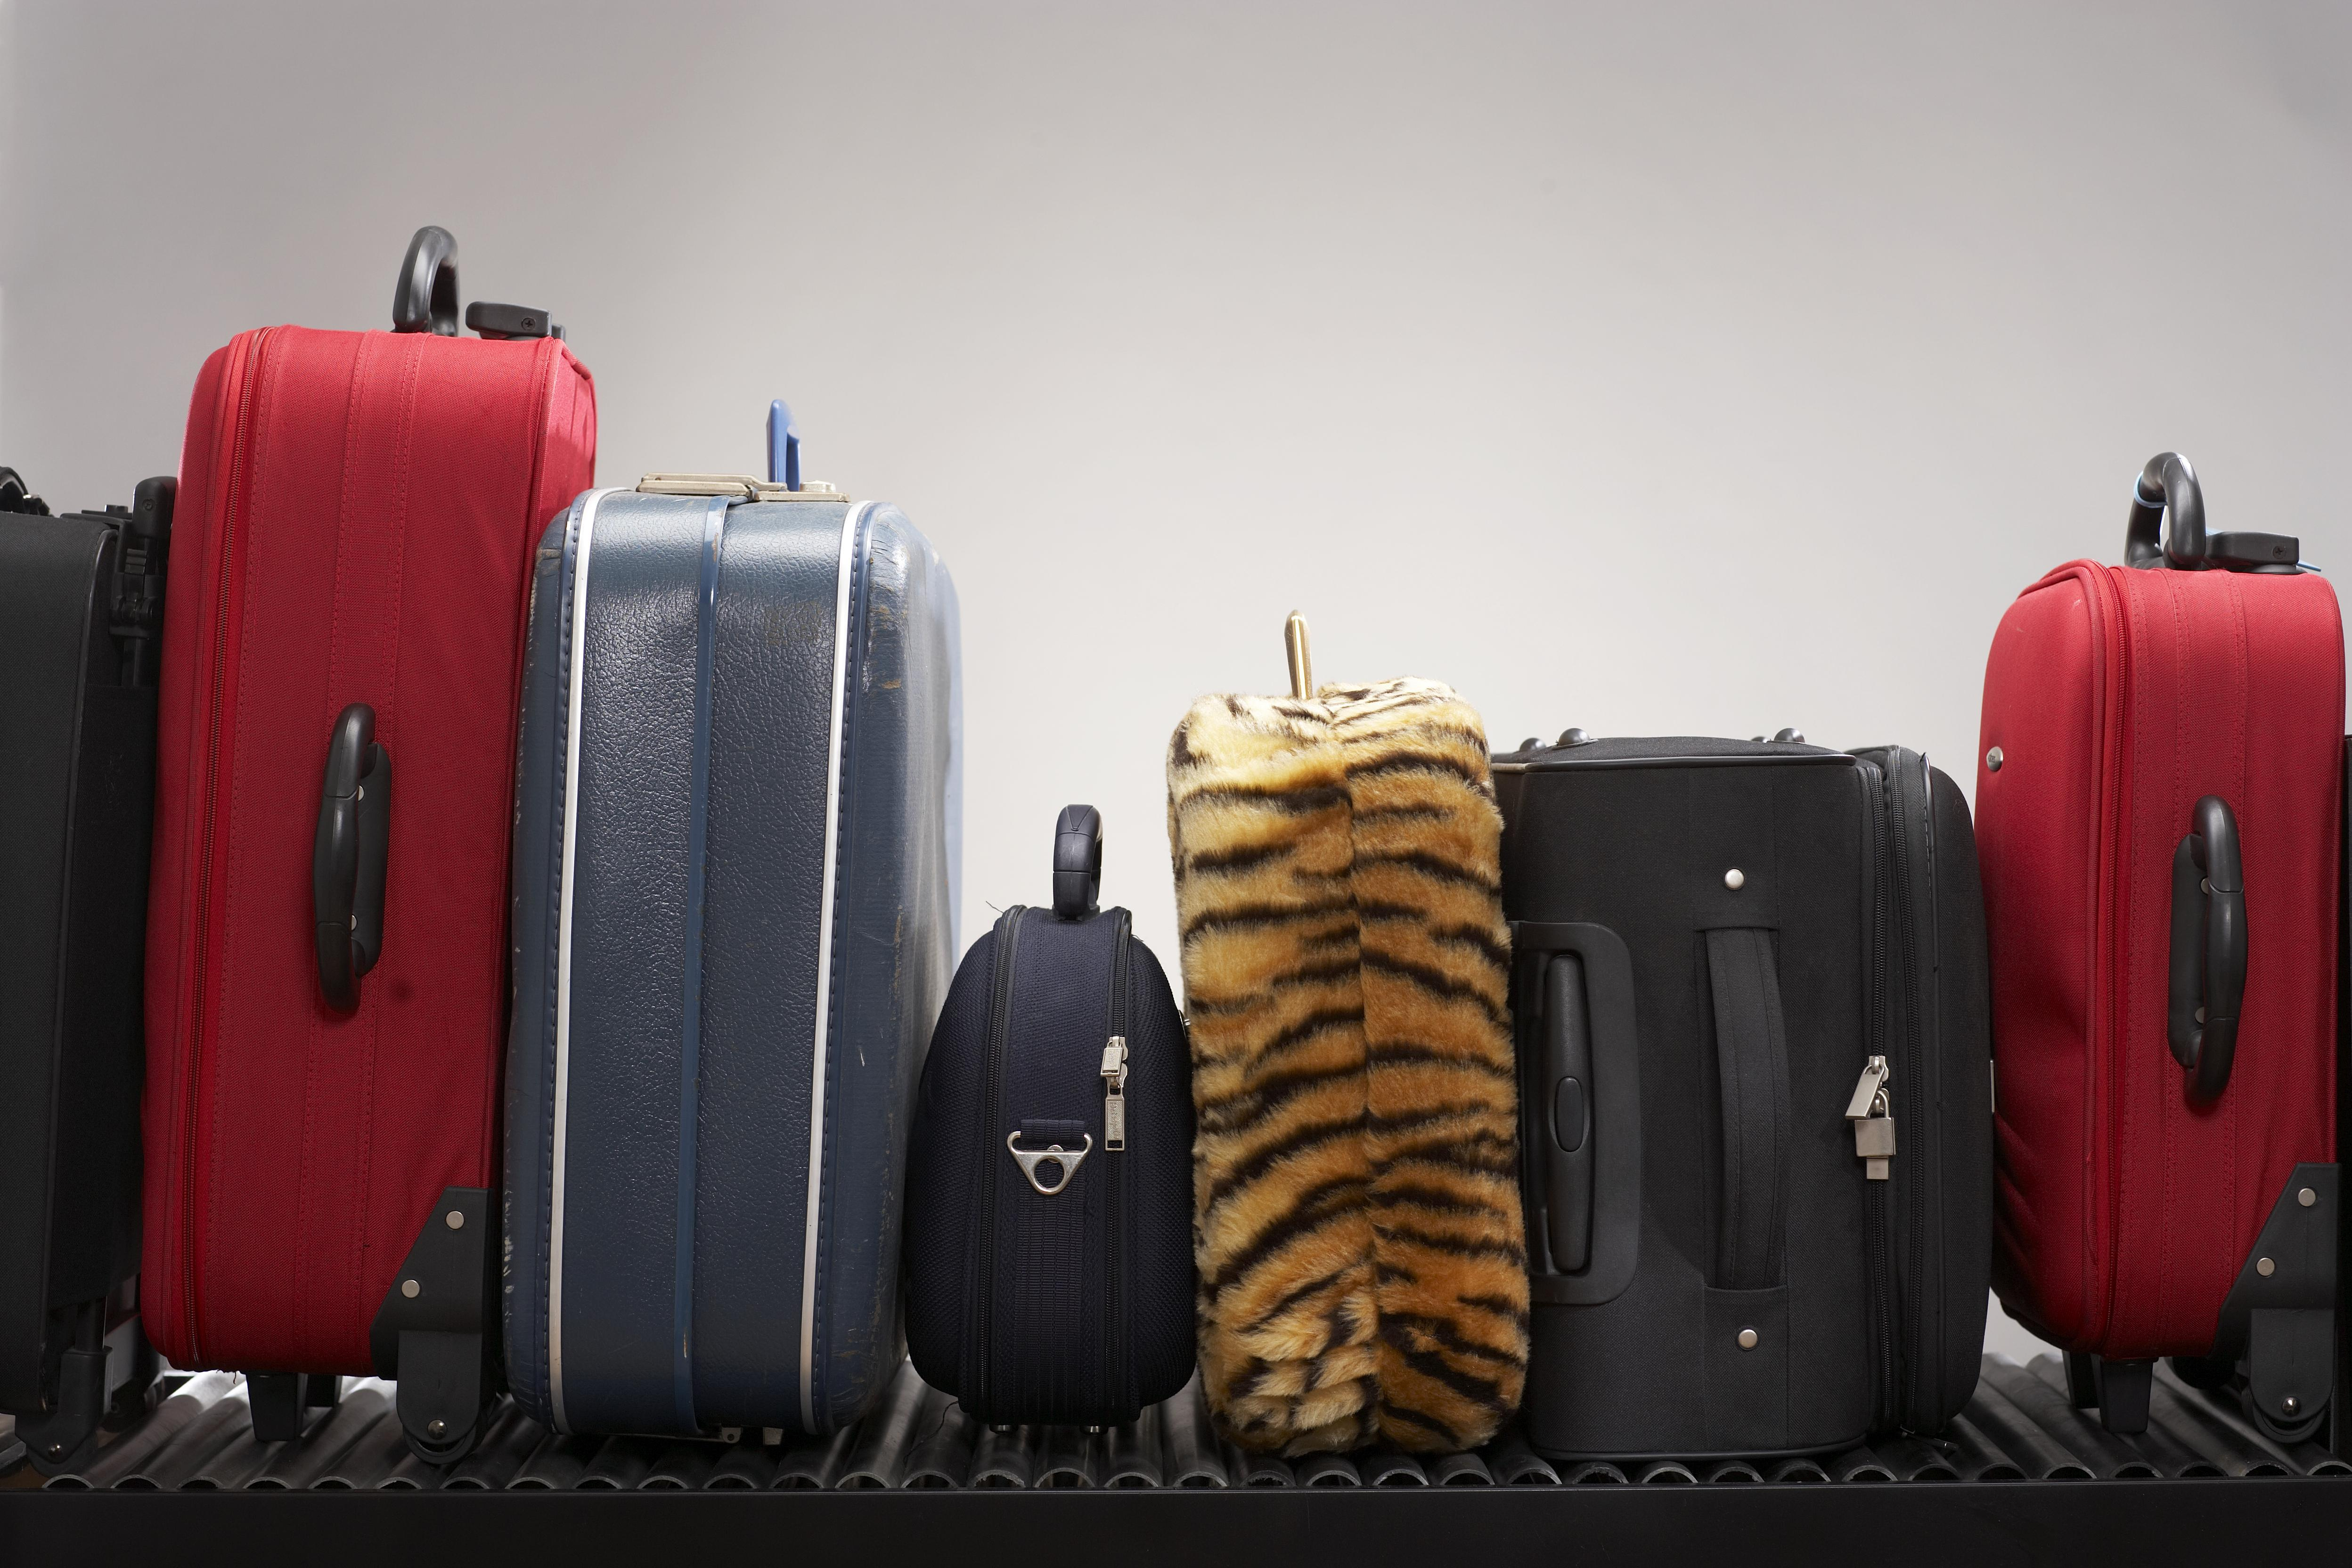 Various suitcases on conveyor belt